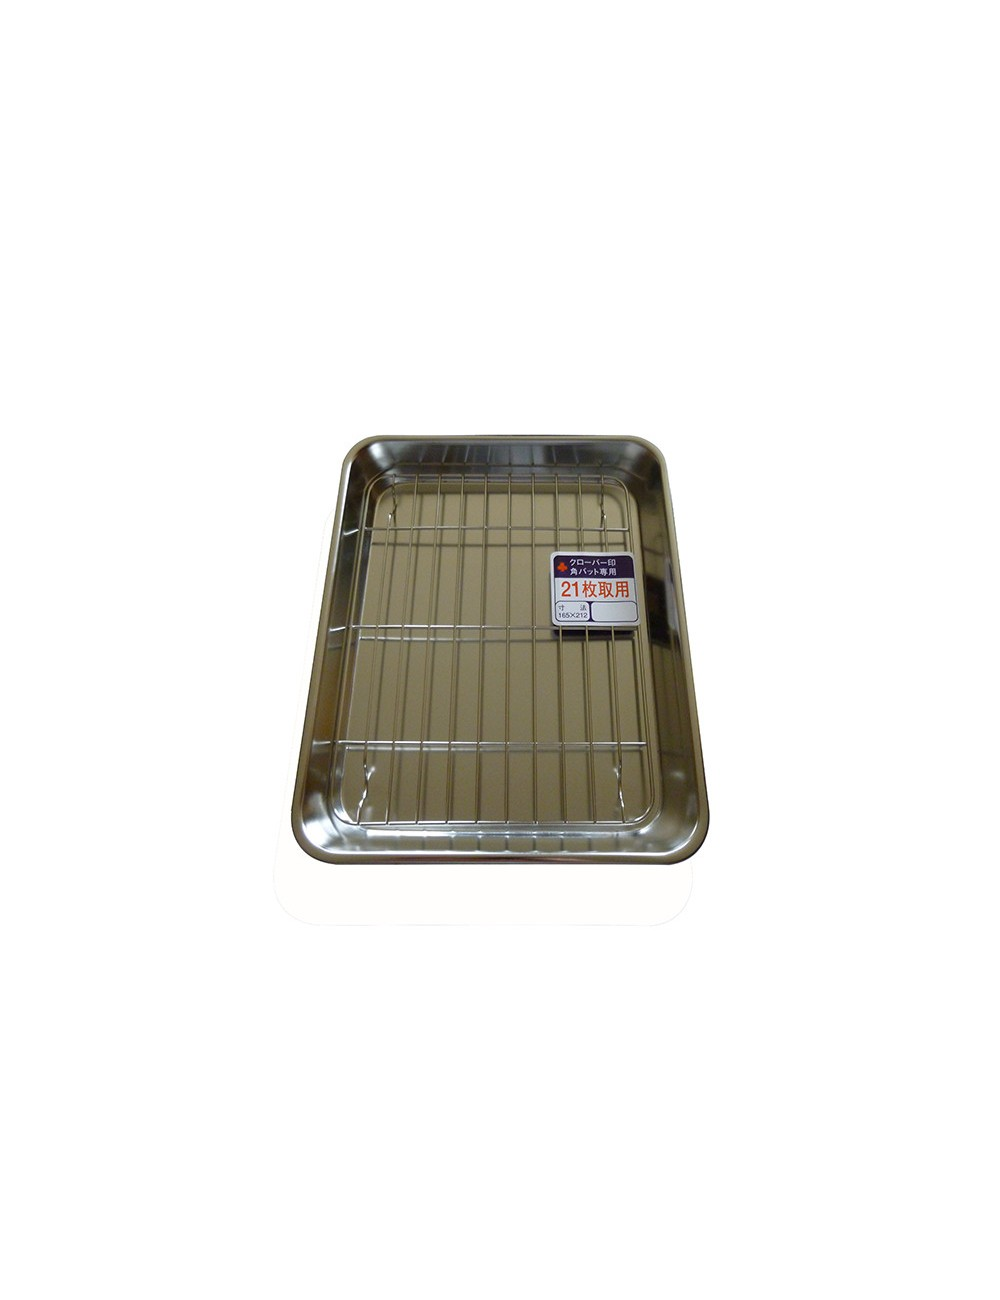 JAPANESE TRAY WITH GRID - STAINLESS STEEL